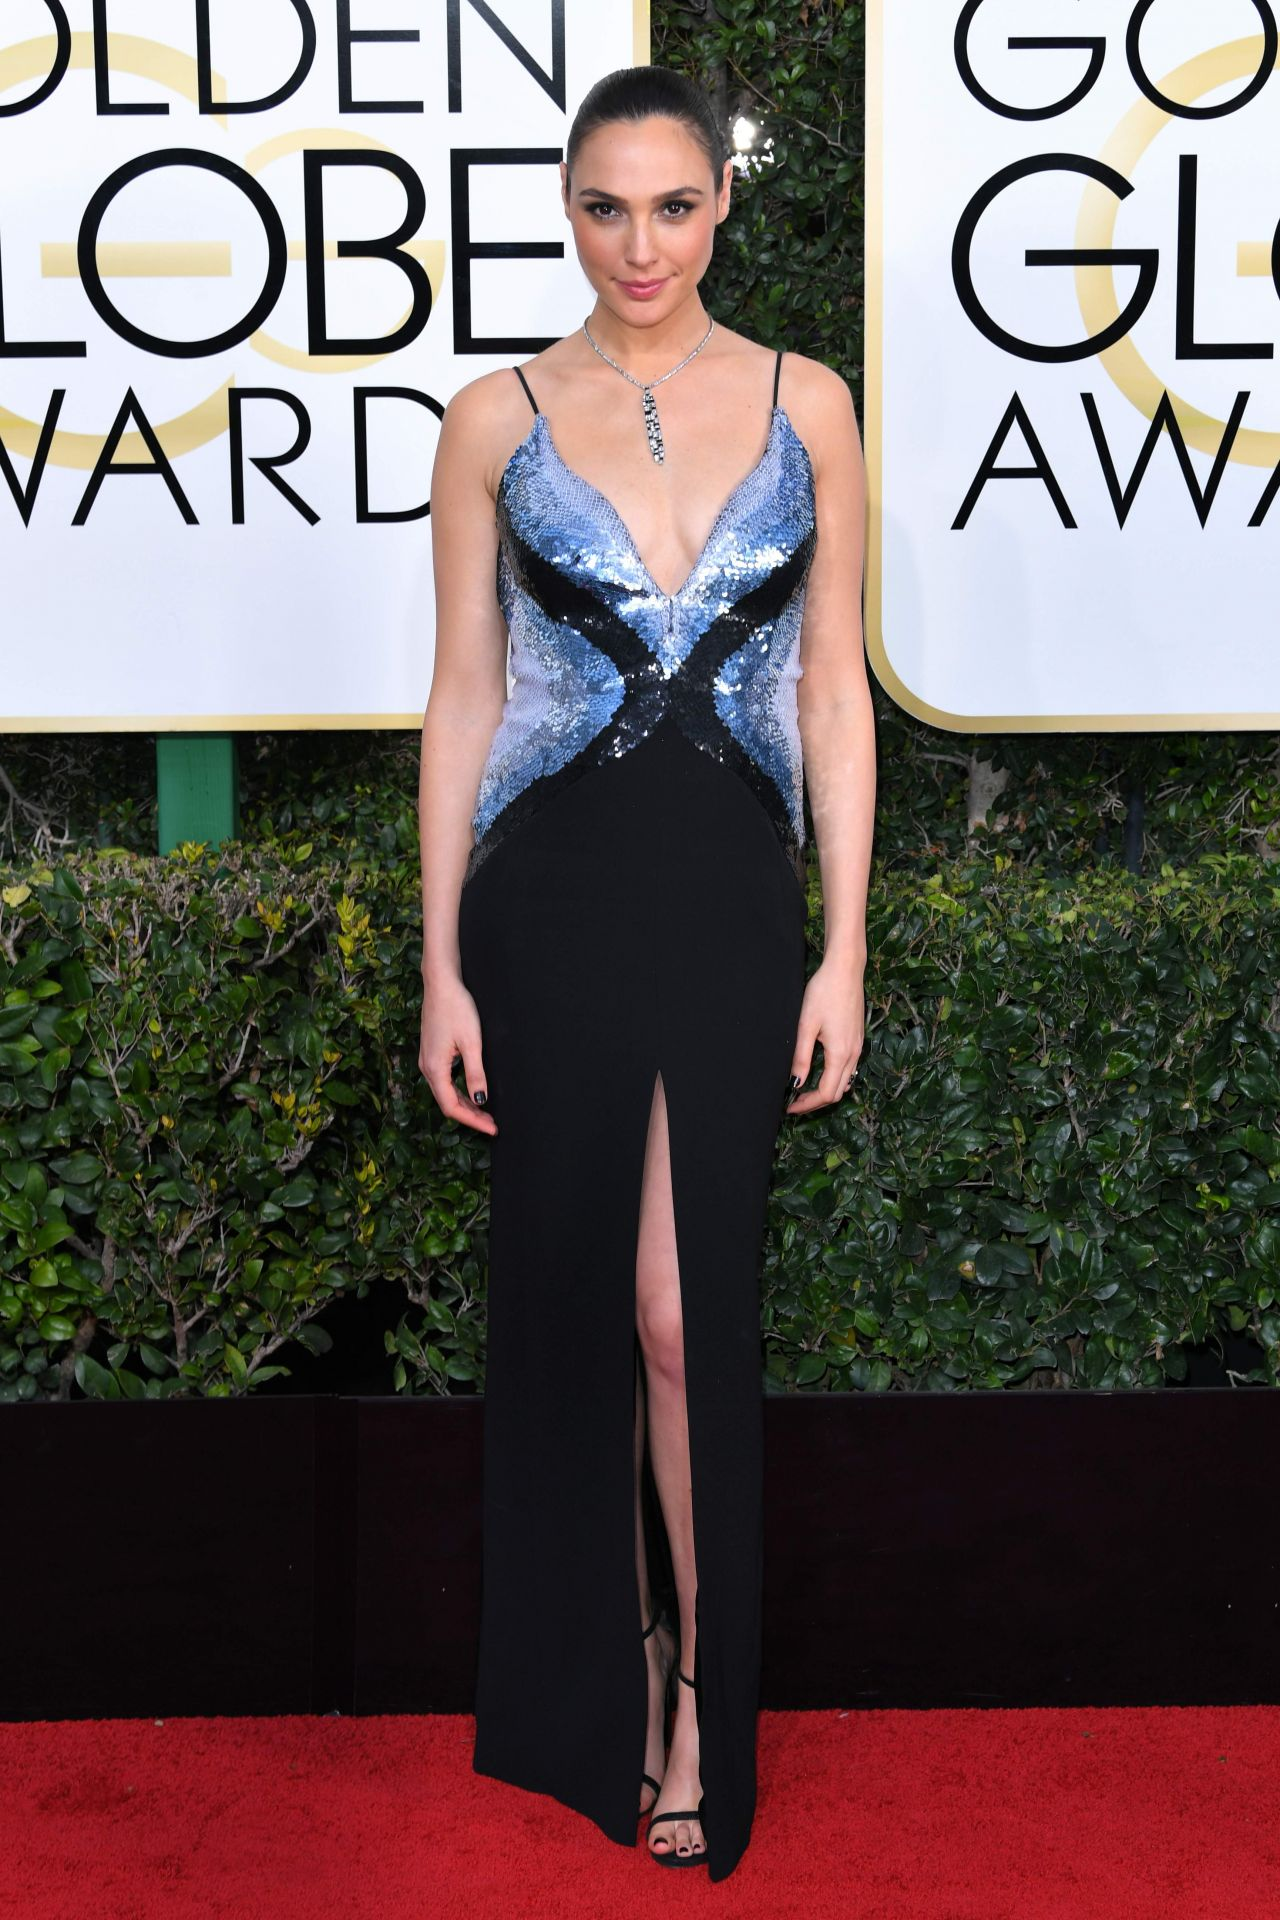 http://celebmafia.com/wp-content/uploads/2017/01/gal-gadot-golden-globe-awards-in-beverly-hills-01-08-2017-7.jpg